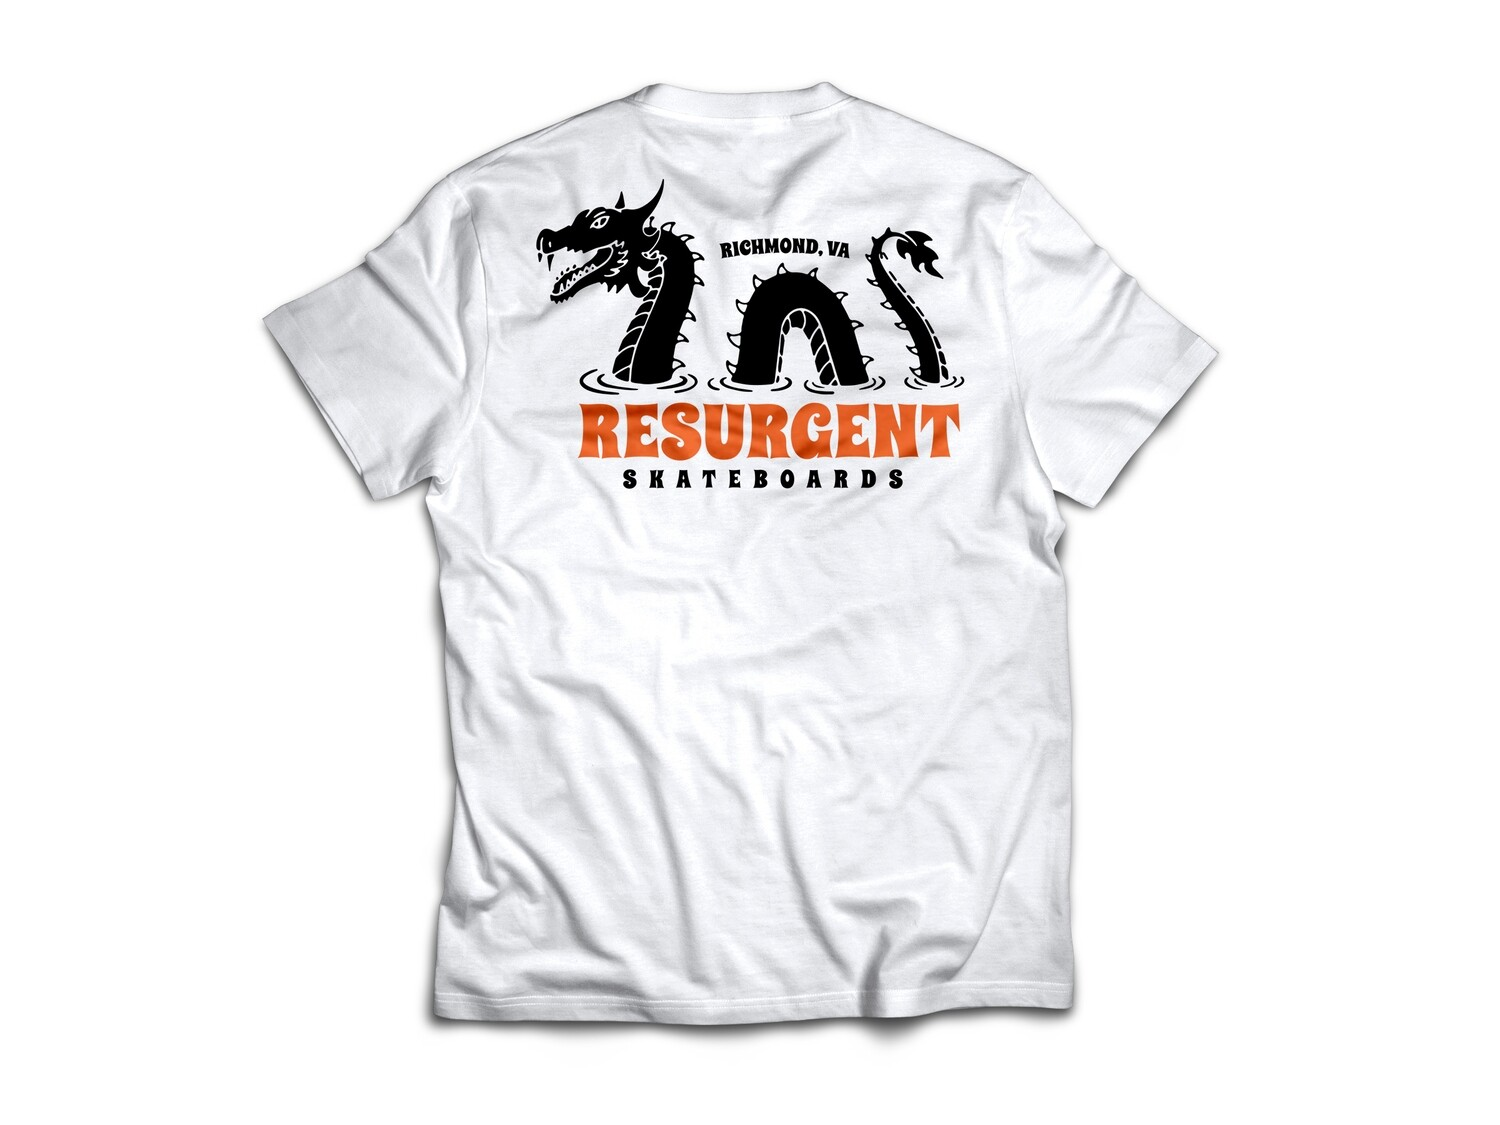 Resurgent River Dragon Tee